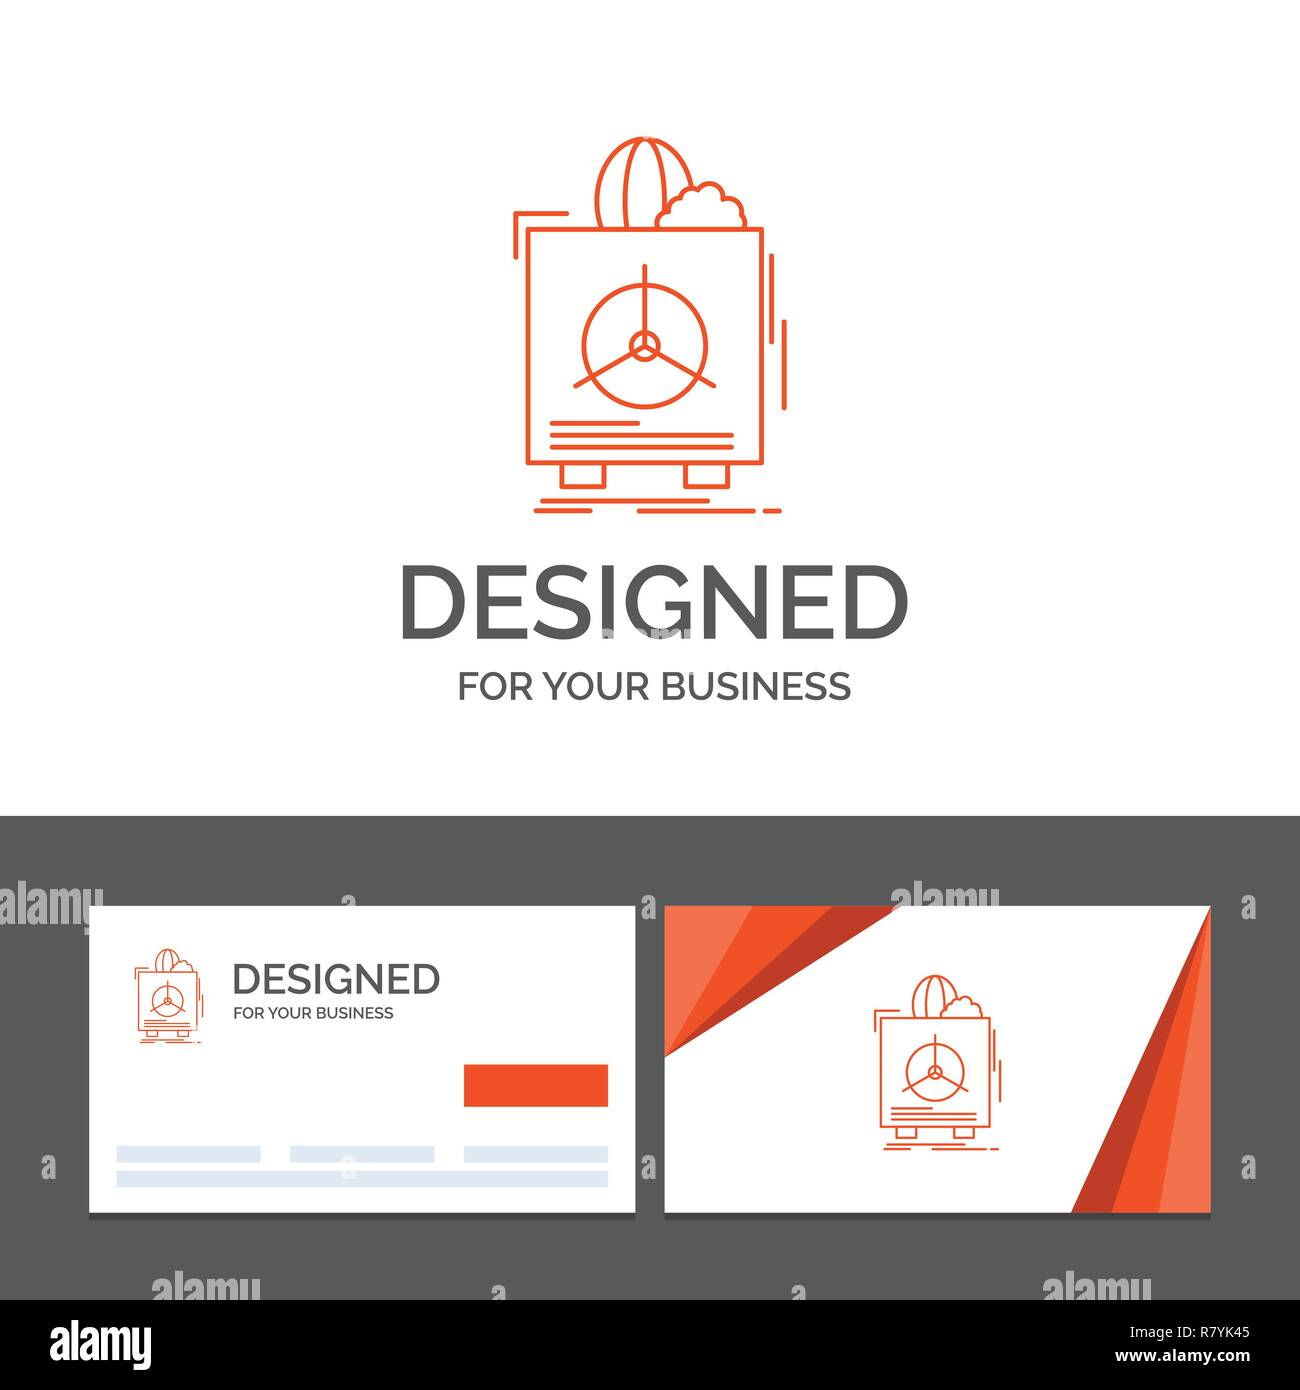 Business logo template for insurance, Fragile, product, warranty, health. Orange Visiting Cards with Brand logo template - Stock Vector